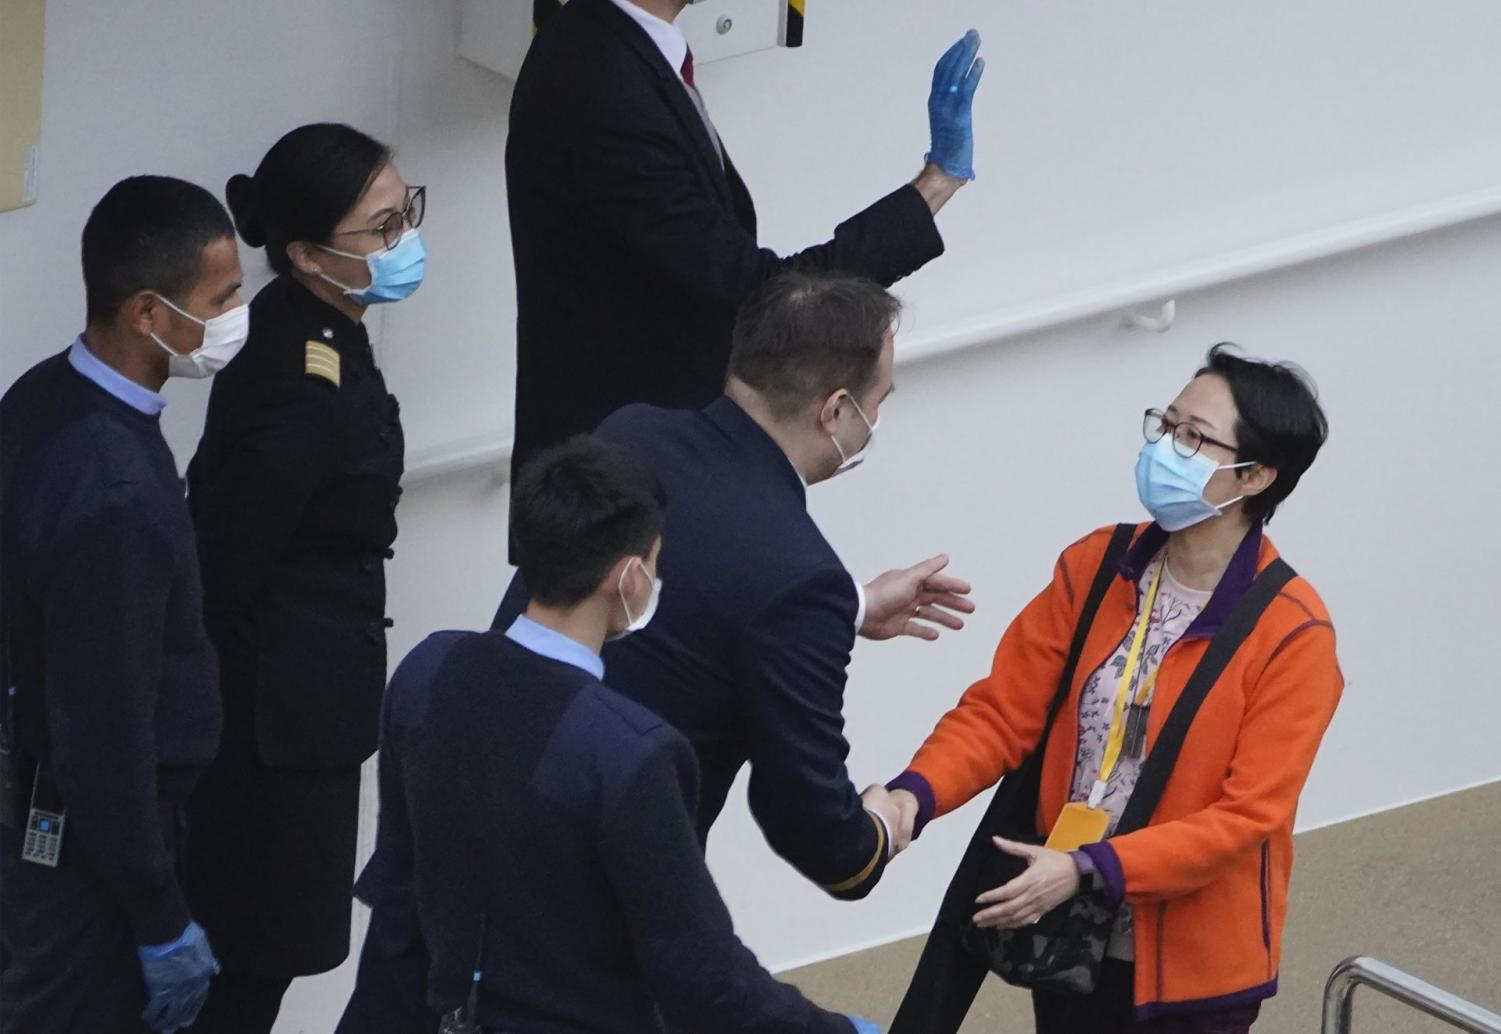 A passenger from the cruise ship World Dream docked at Kai Tak cruise terminal shakes hands with staff as she disembarks the ship after be quarantined for the coronavirus in Hong Kong, Sunday, Feb. 9, 2020. Several passengers from mainland China on a previous World Dream cruise were found to have the new coronavirus on returning home.